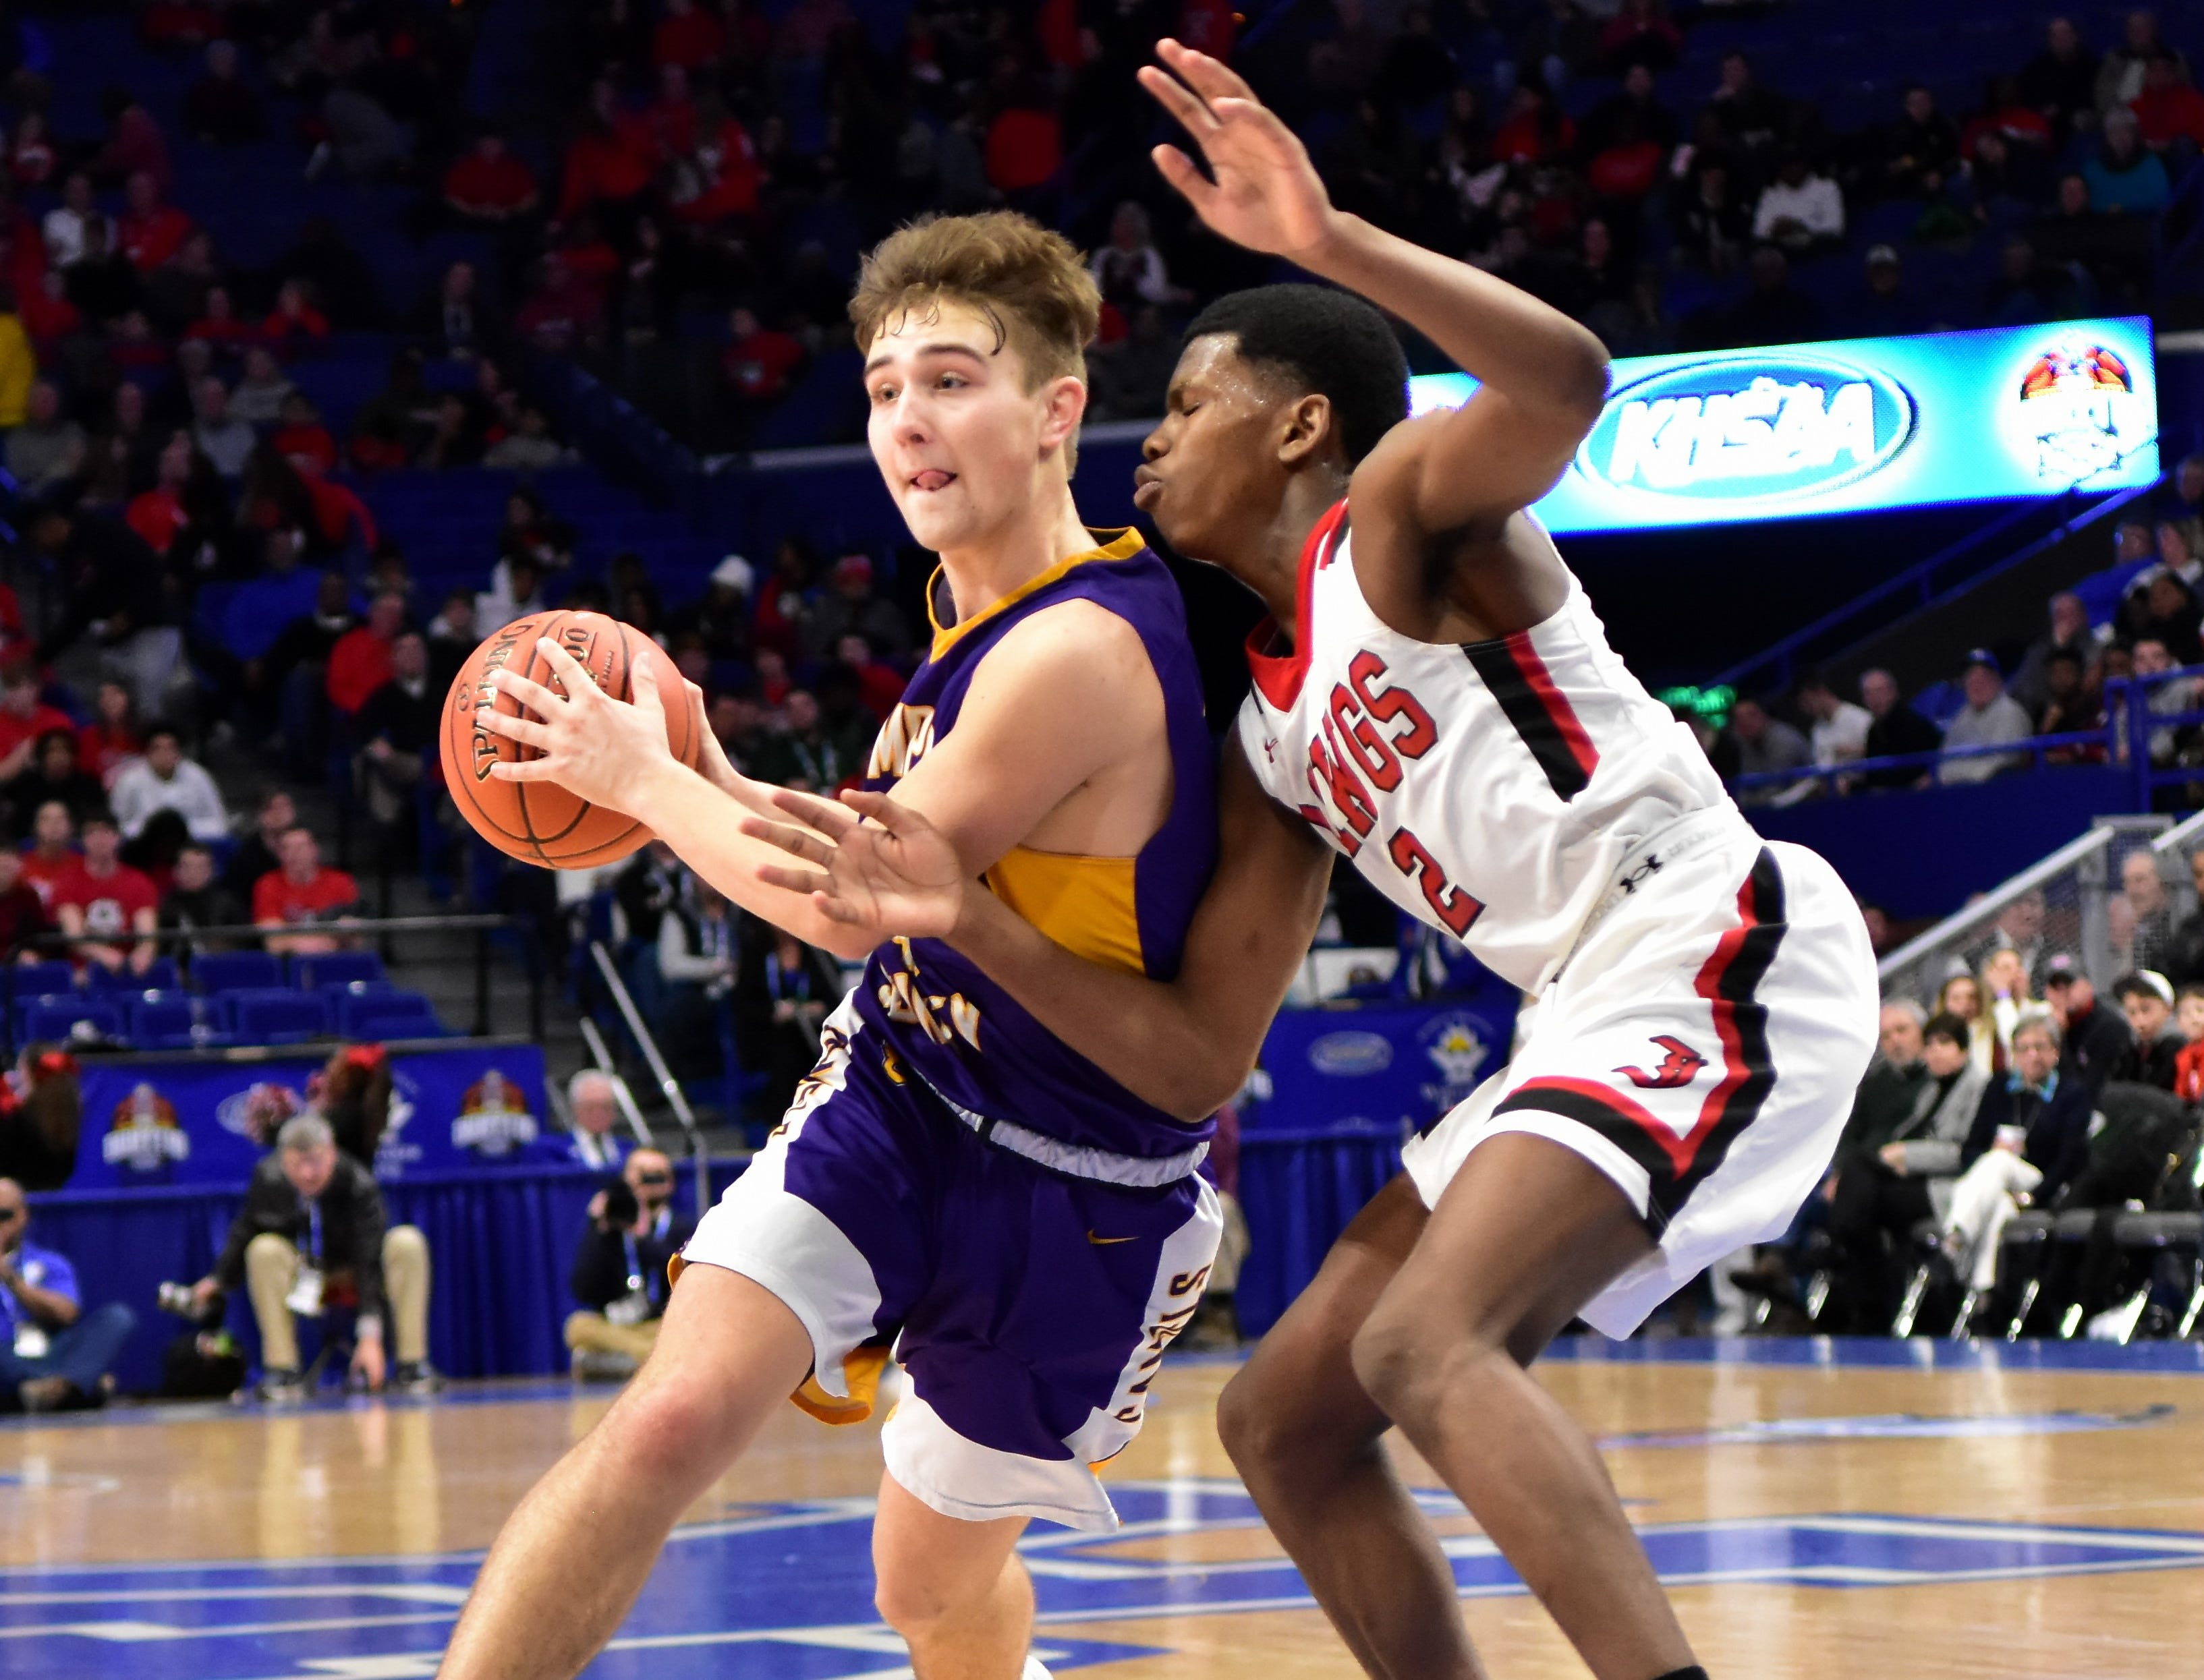 Tight squeeze defense was the rule most of the night from John Hardin but Campbell County prevailed in round 1 by a 61-60 count at the KHSAA Sweet 16 Tournament at Rupp Arena in Lexington, KY, March 6, 2019